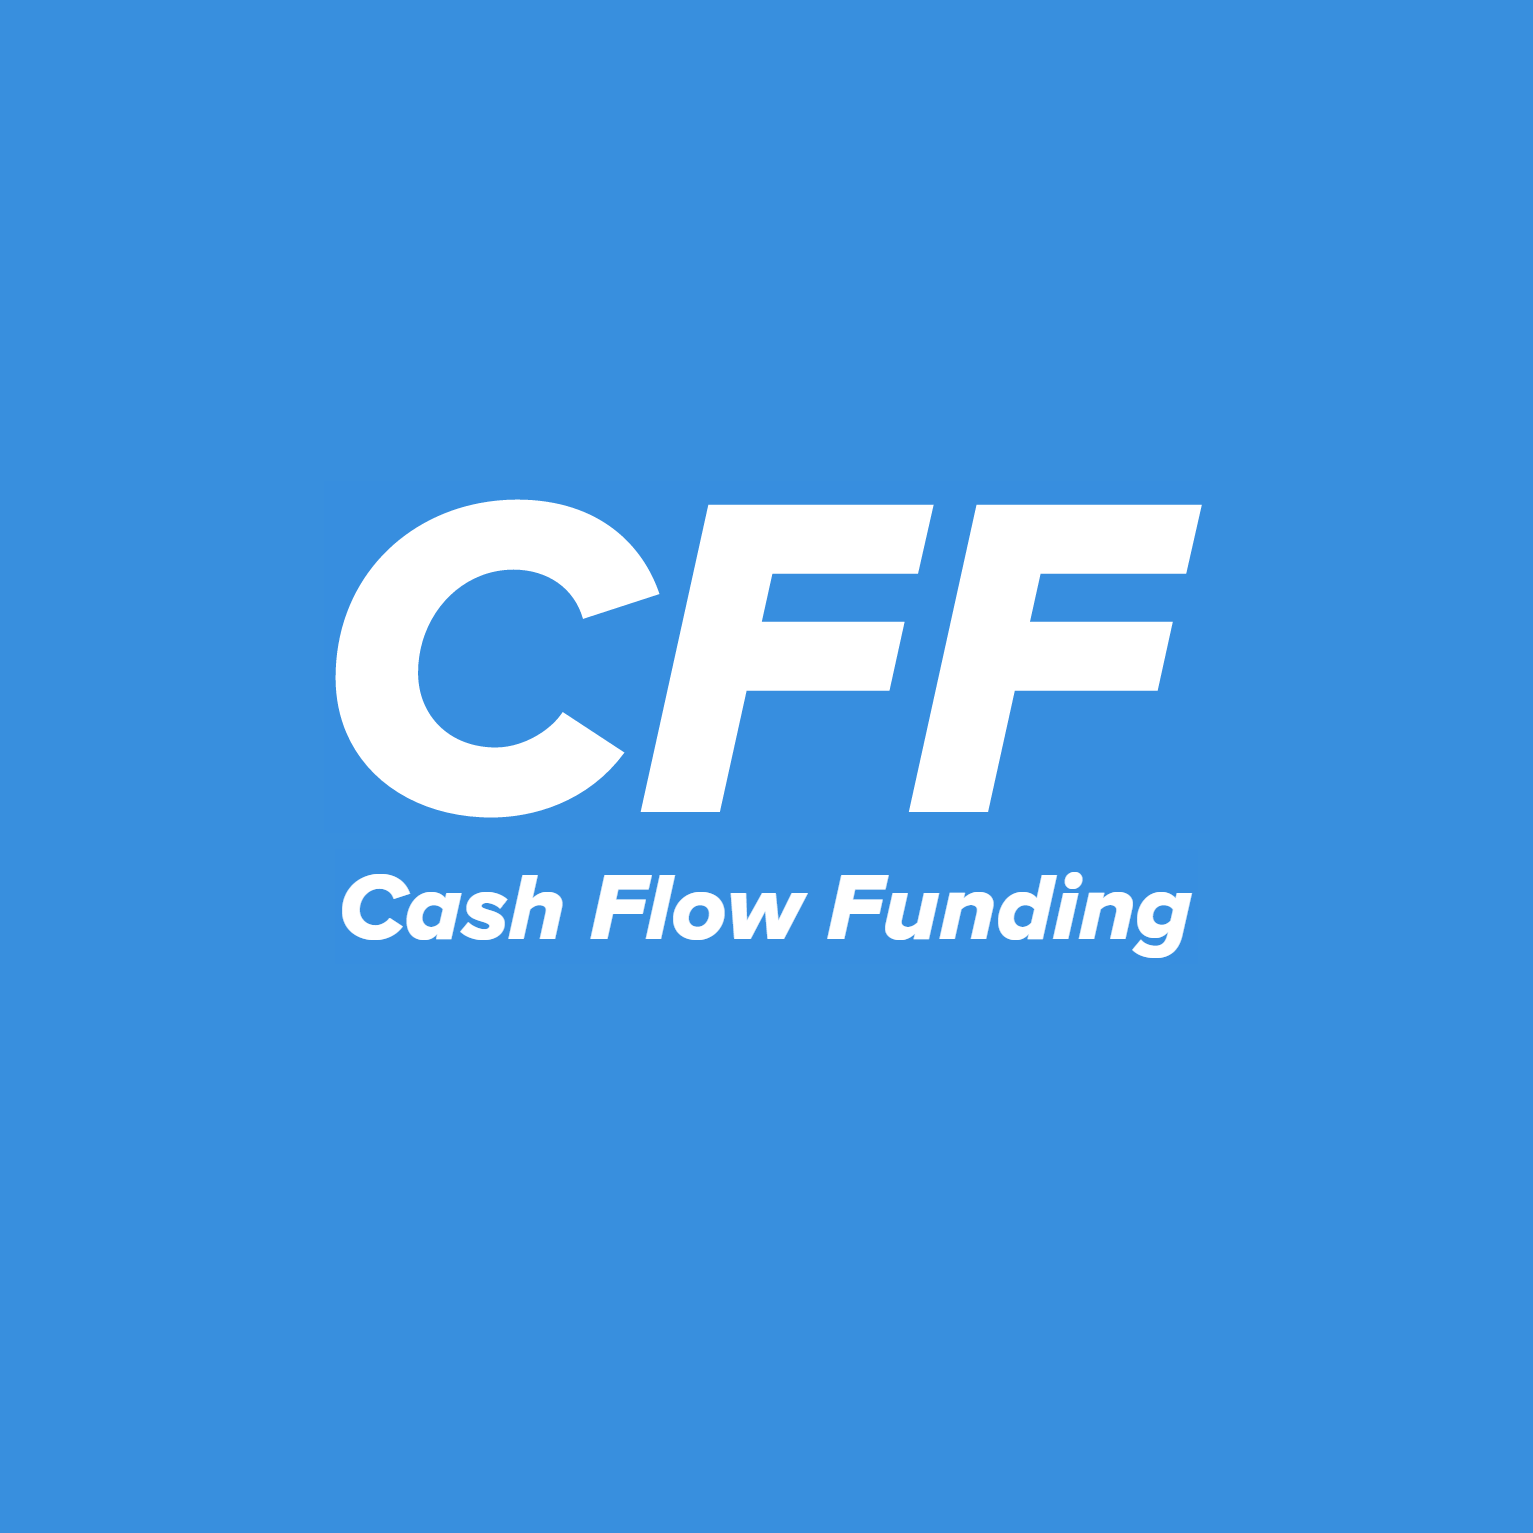 Cash Flow Funding